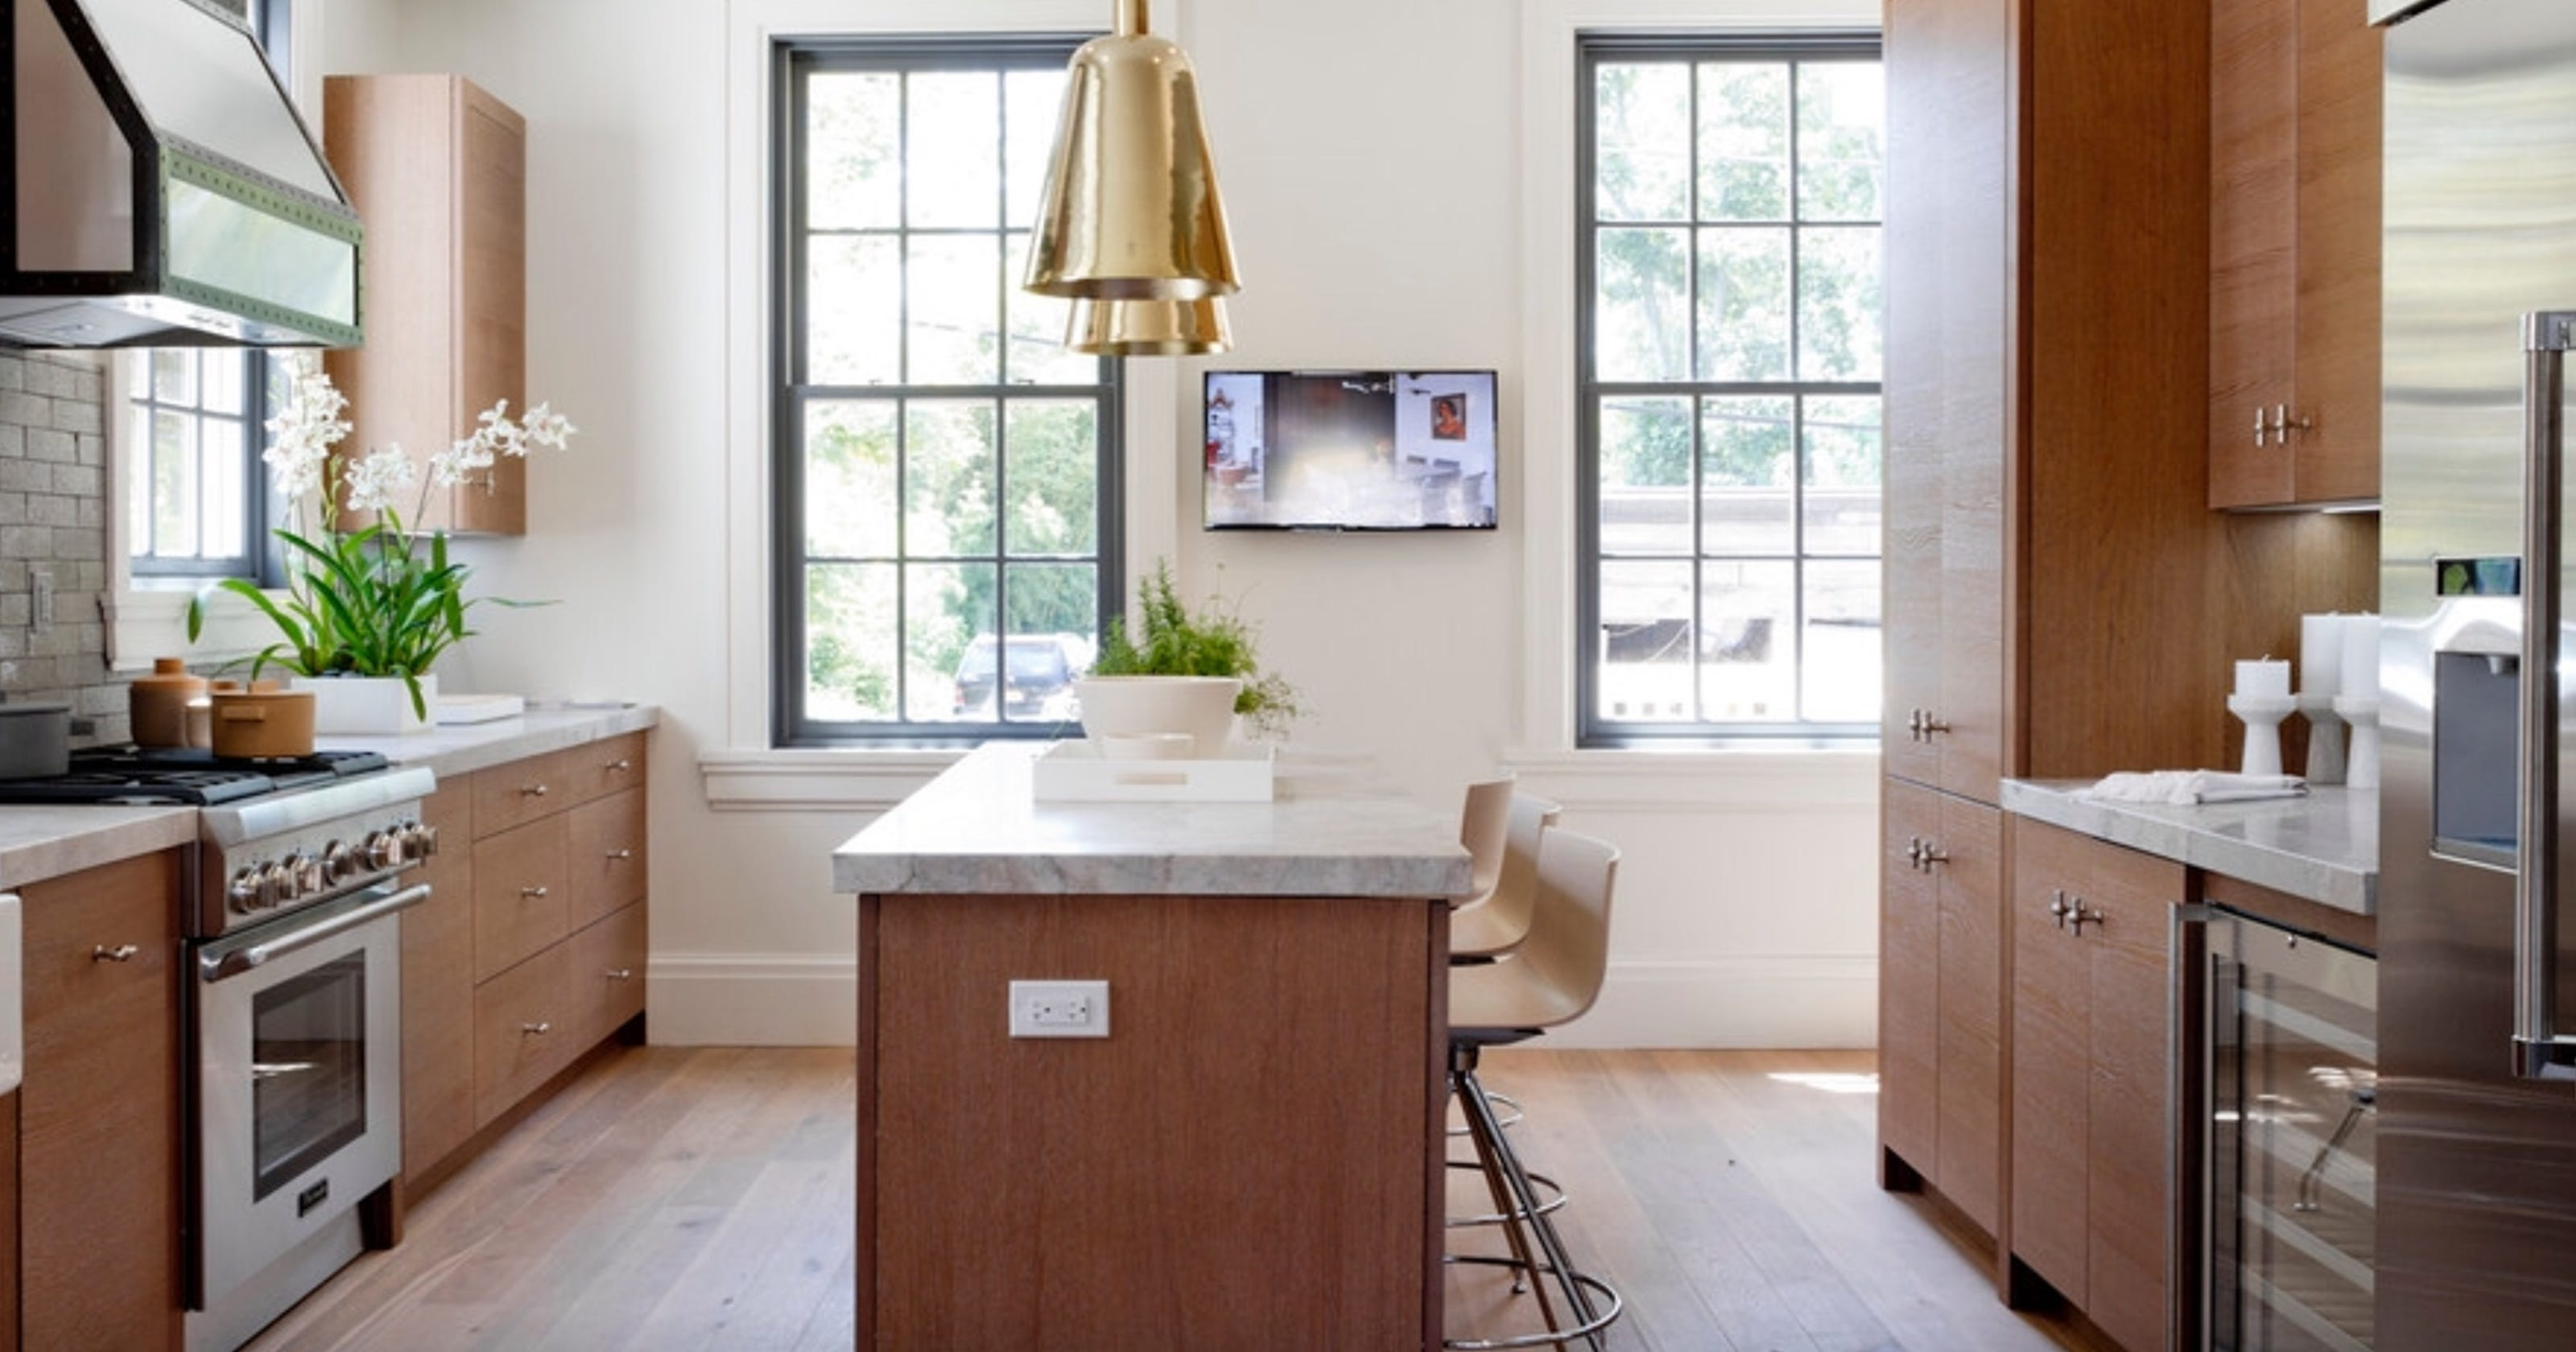 Kitchens getting more modern, less fussy